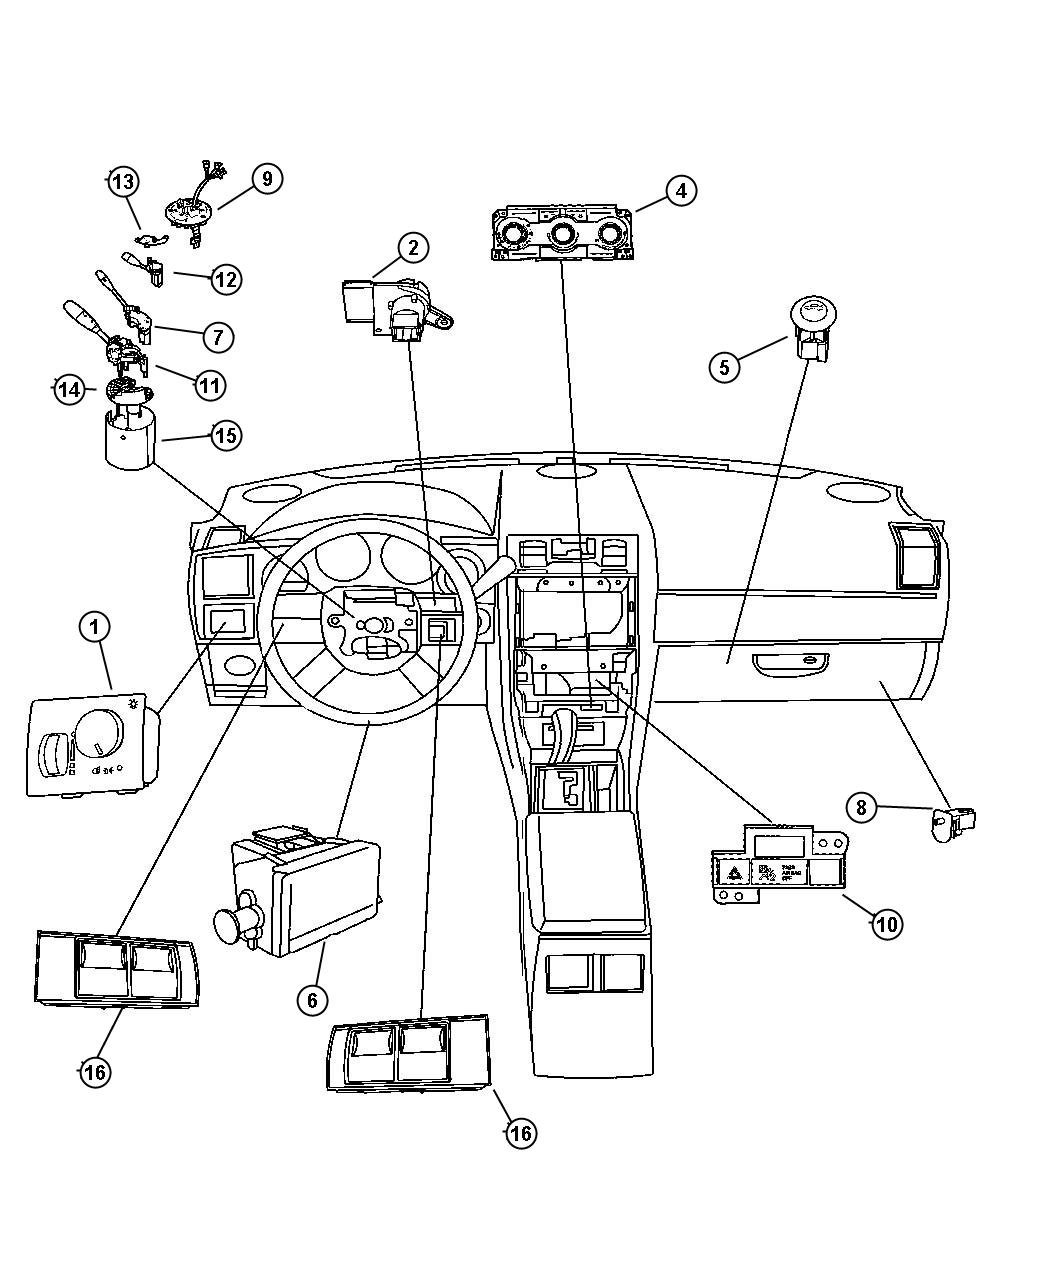 Dodge Magnum Control Used For A C And Heater Atc Air Zone